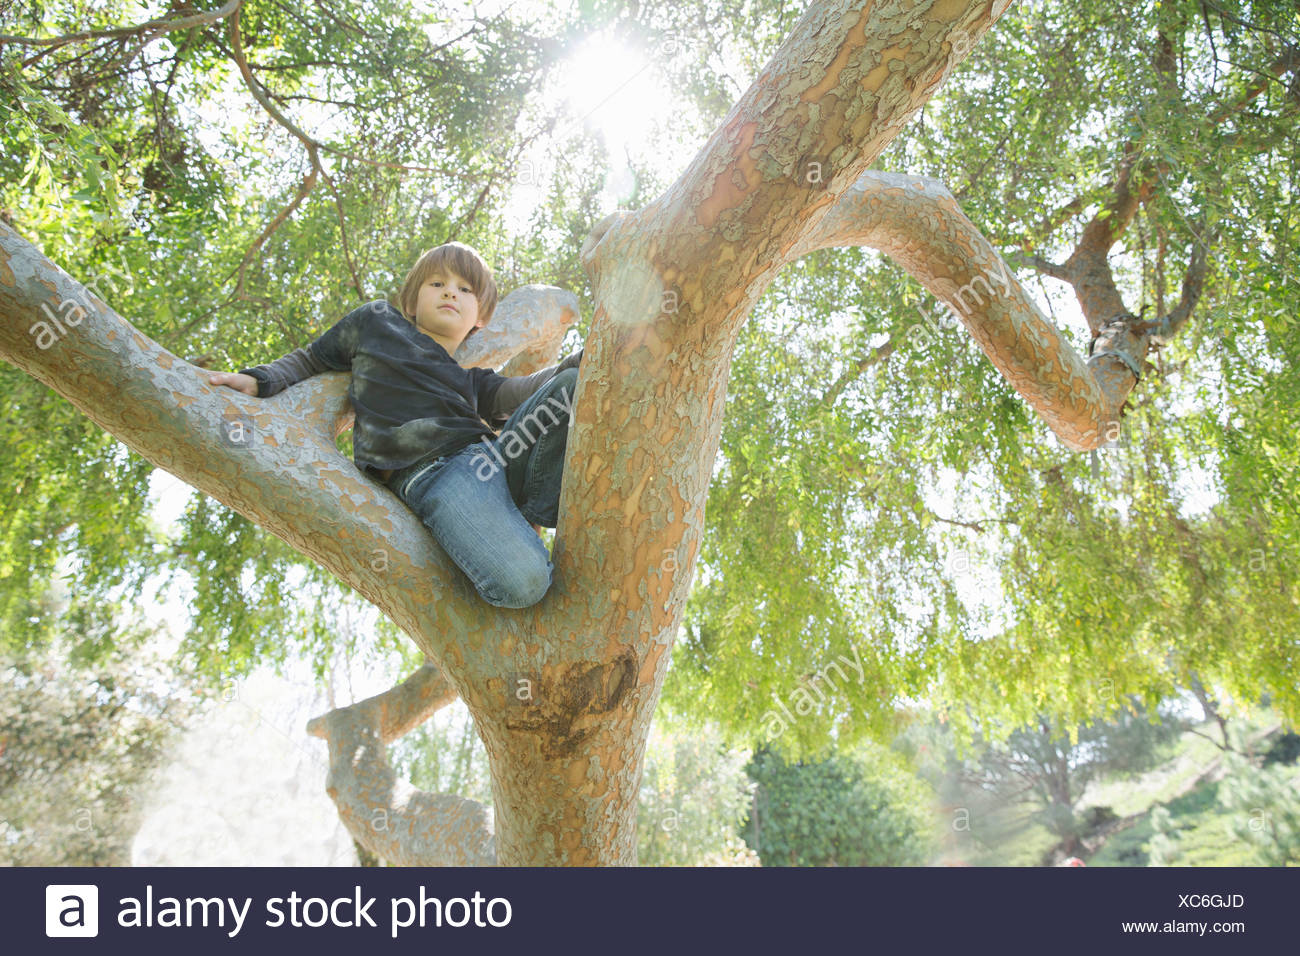 Boy hiding in tree and looking down - Stock Image